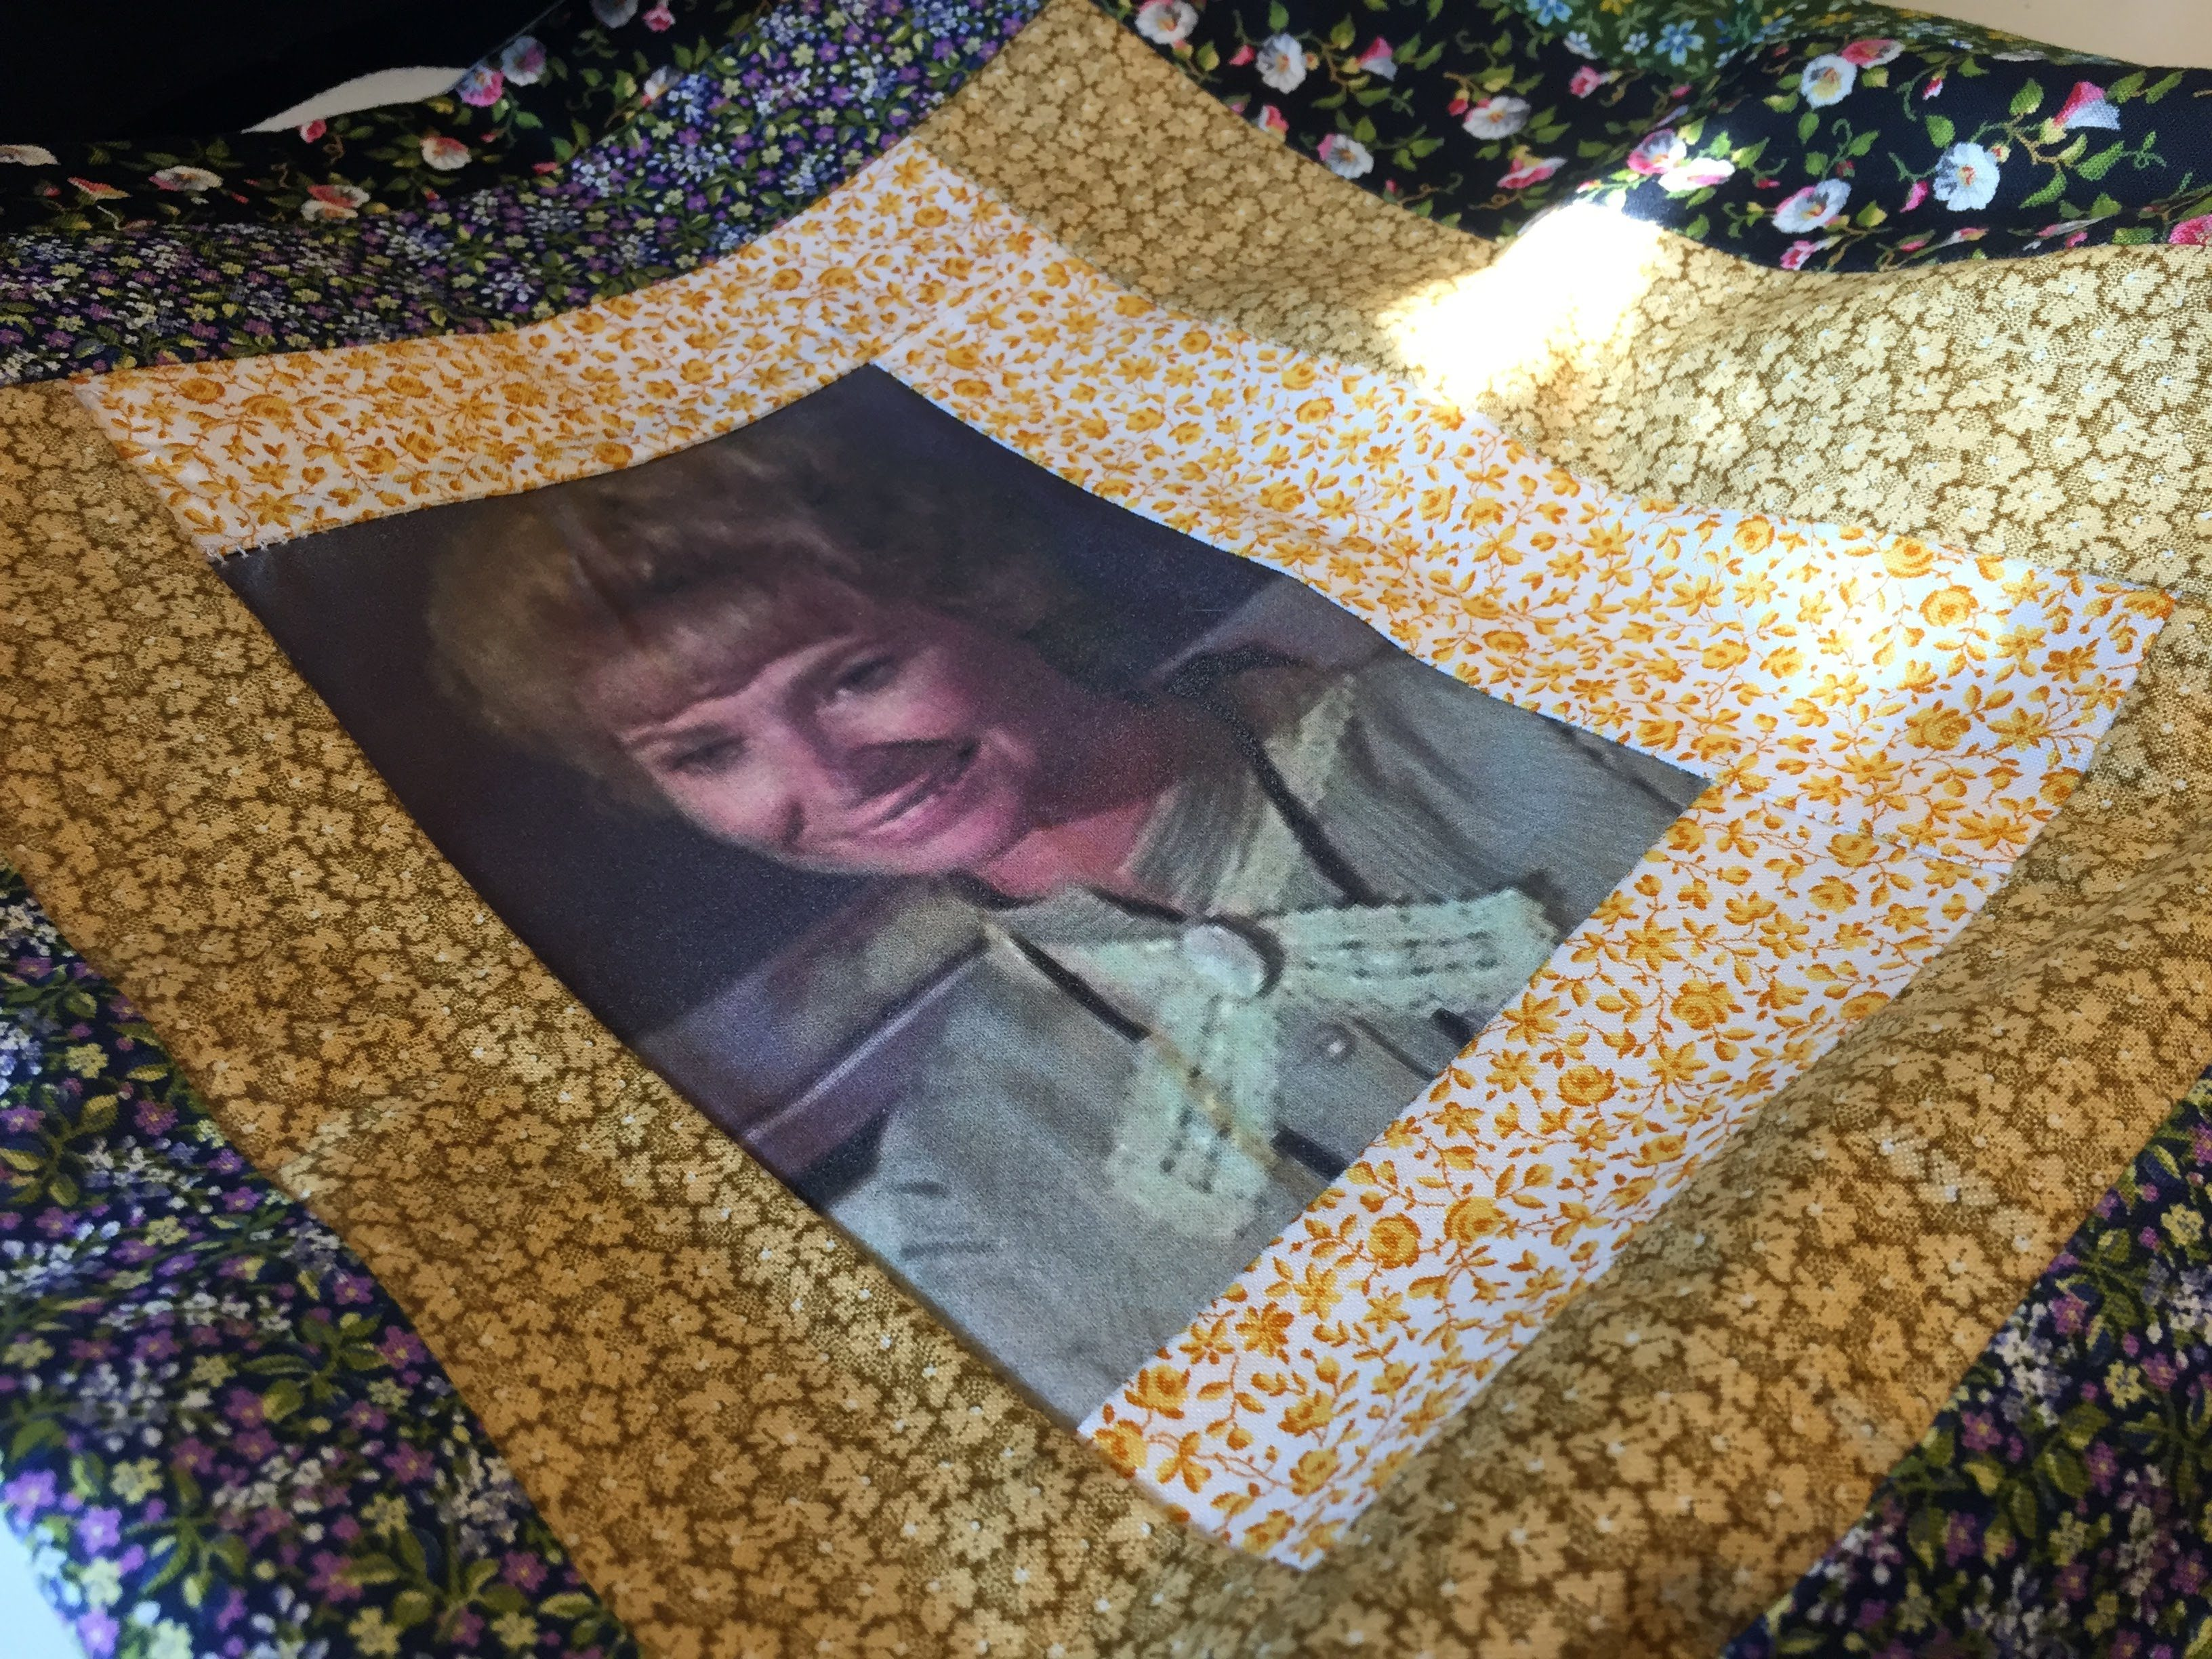 Win this Charlotte Stewart Autographed Beadle Bag!